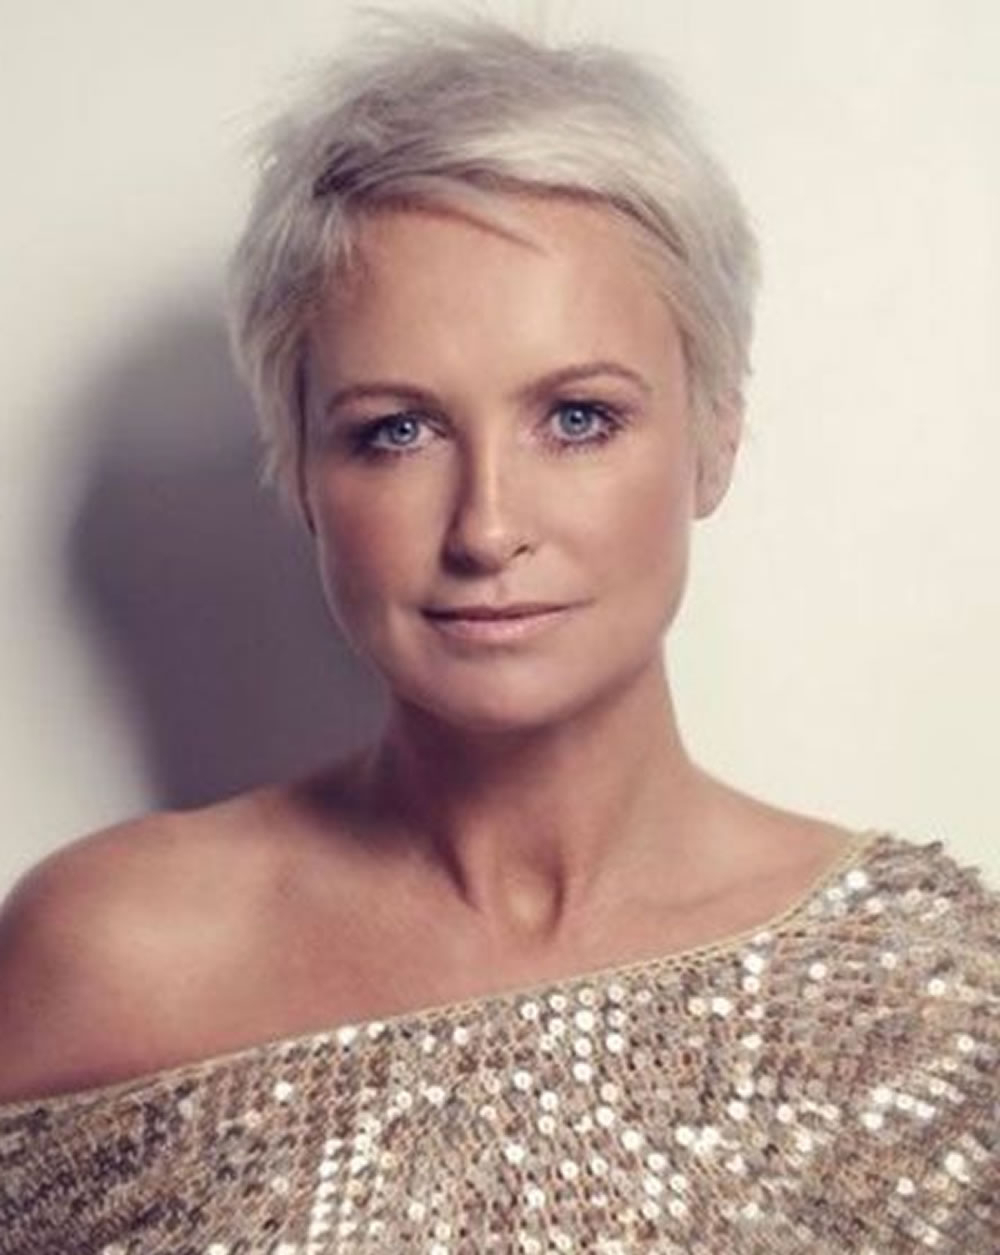 30 Easy Short Hairstyles For Older Women – You Should Try! – Hairstyles With Regard To Older Women Short Haircuts (View 9 of 25)